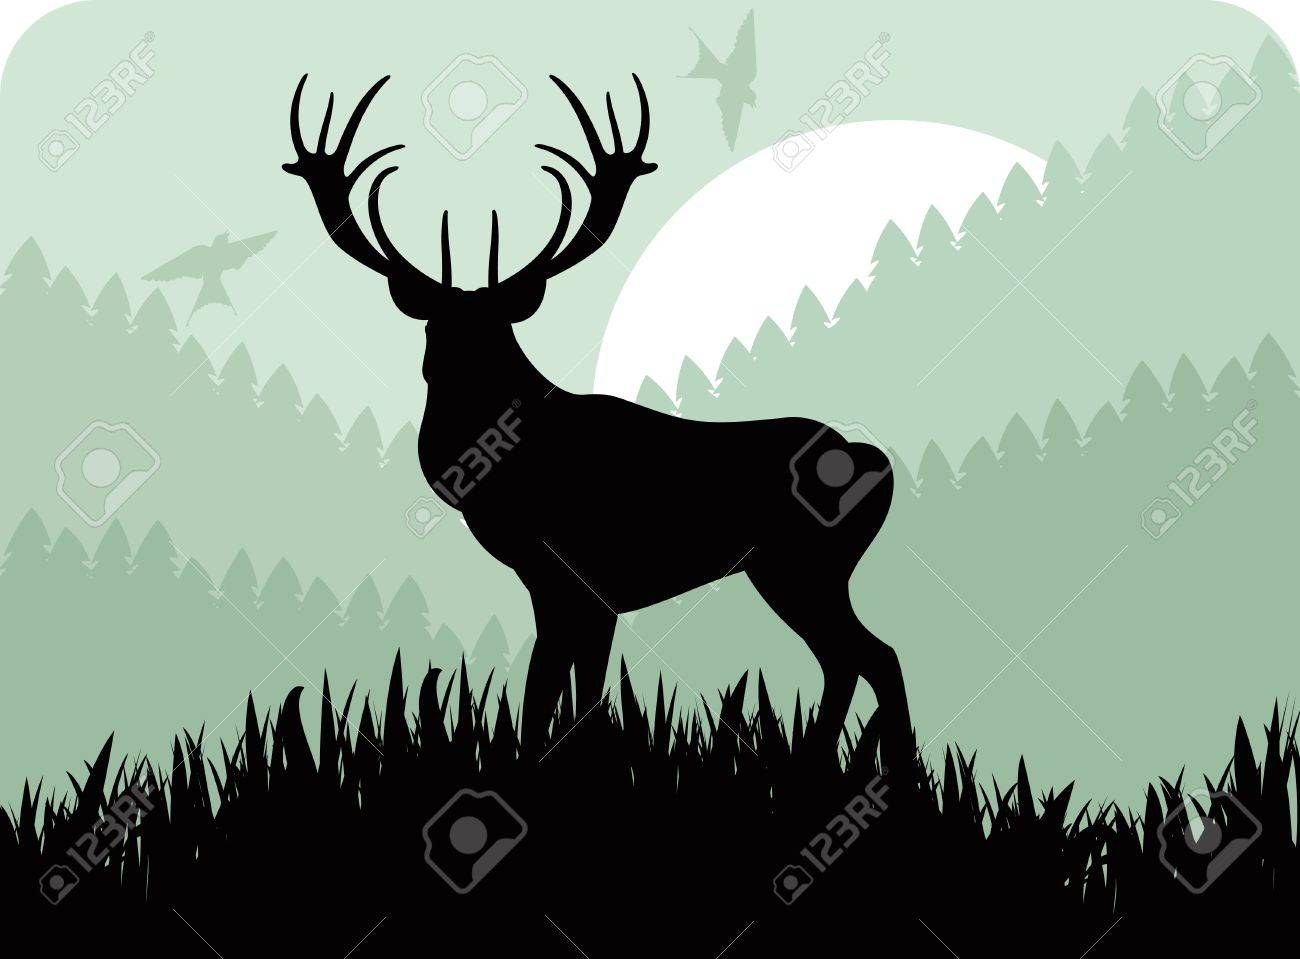 Animated rain deer family in wild forest foliage illustration Stock Vector - 10553797